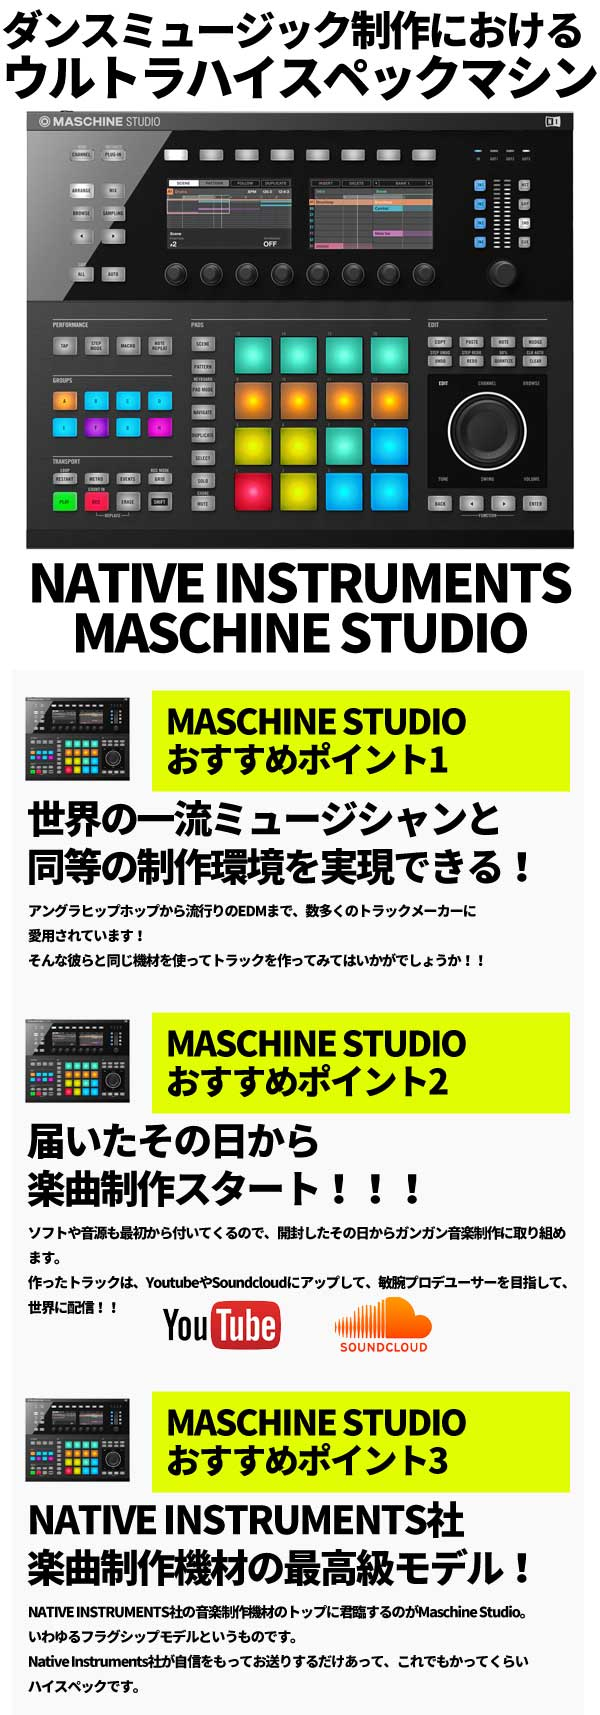 MASCHINE STUDIO SUPER SALE